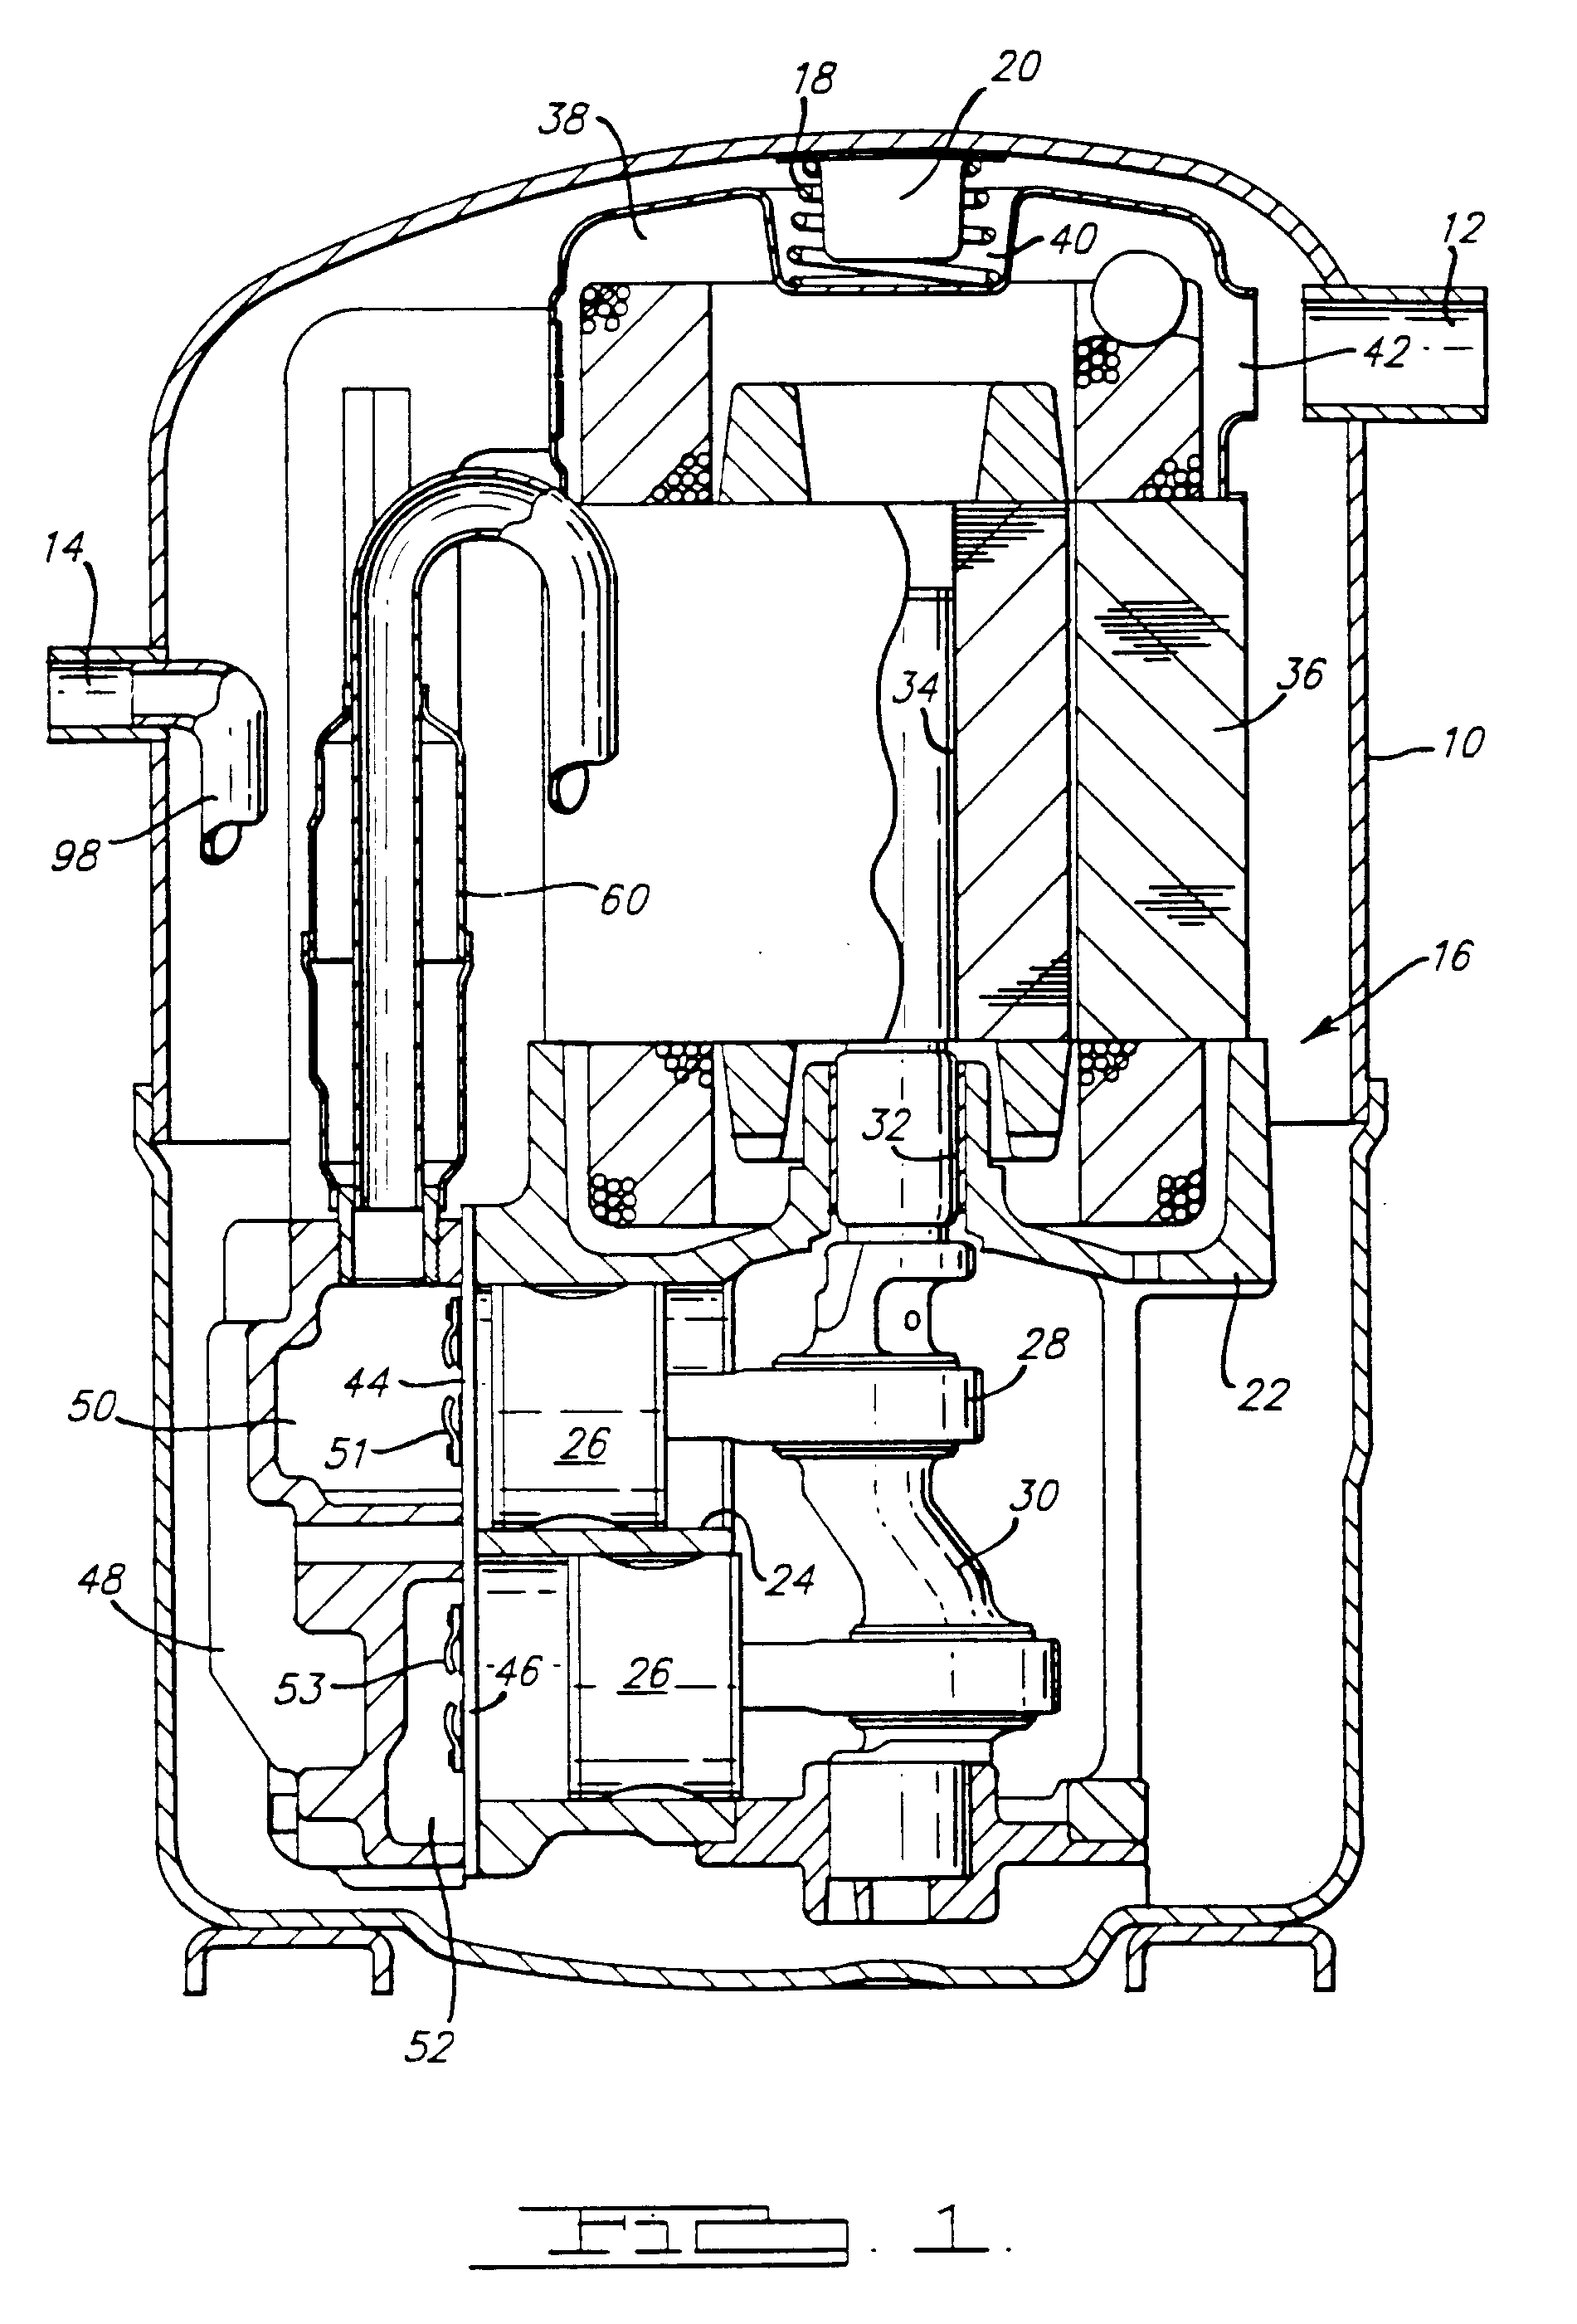 compressor designers of refrigeration and air conditioning systems  #3B3B3B